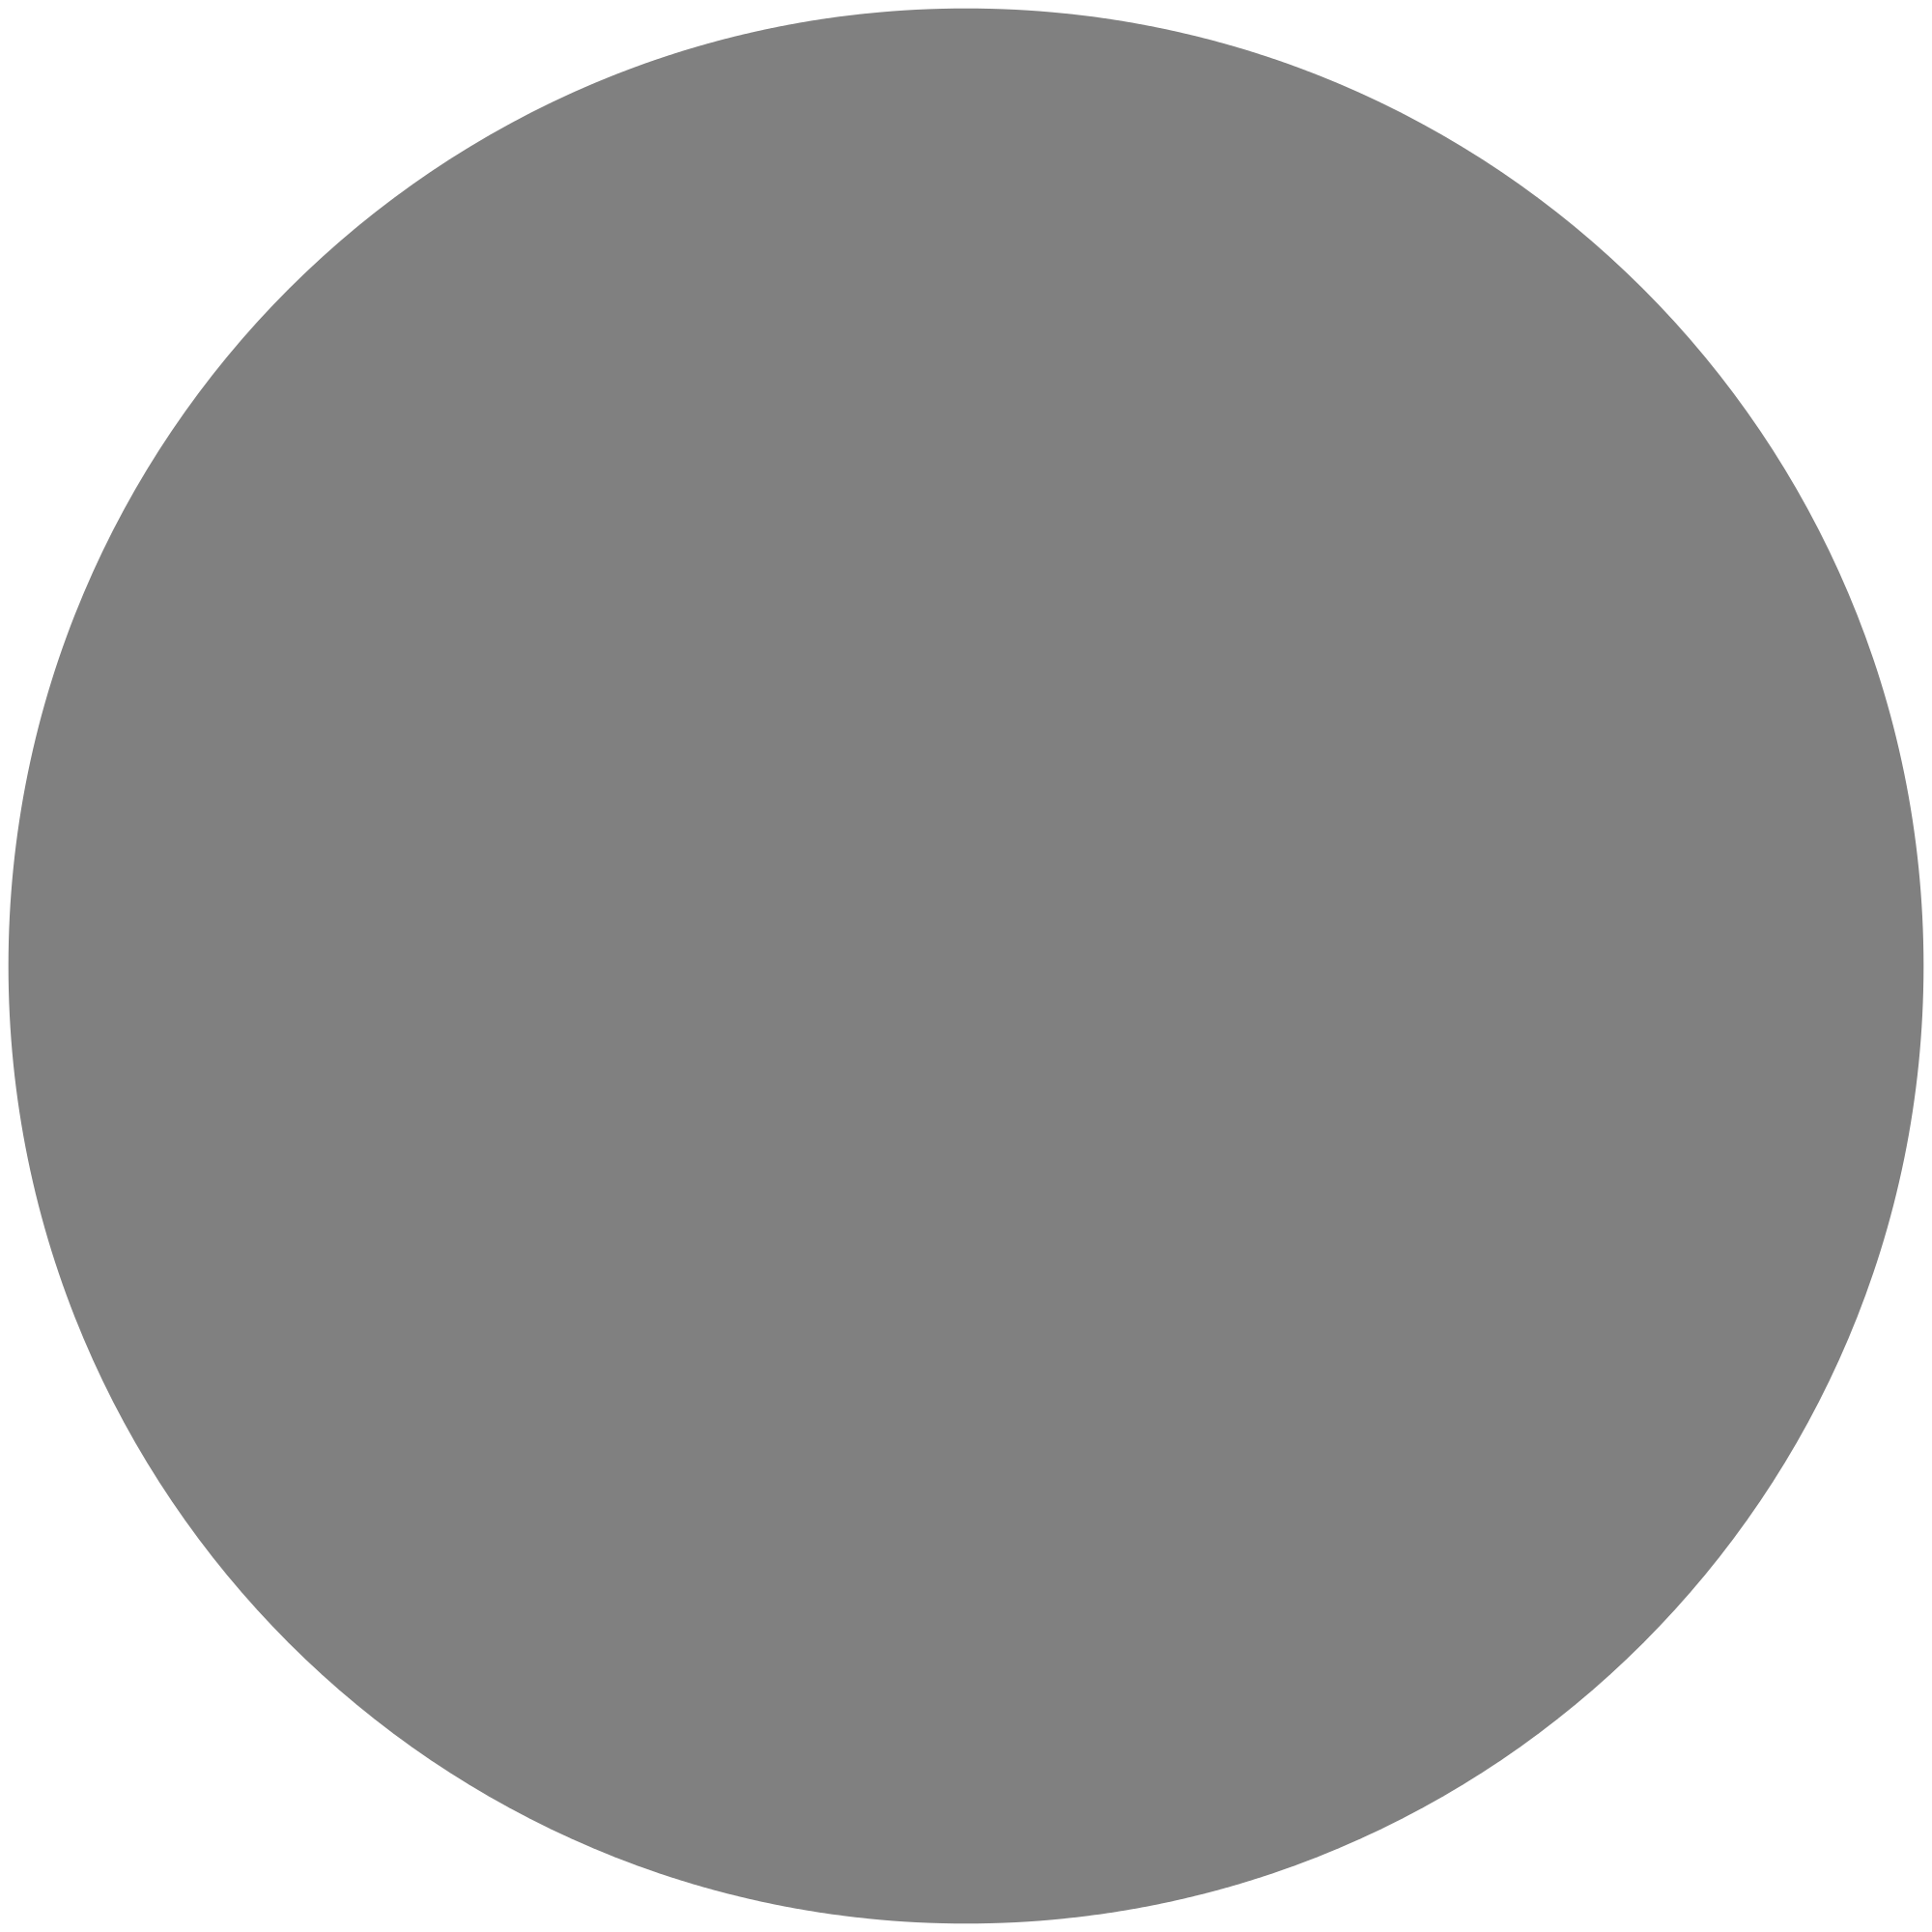 Circle png. File wikimedia commons new